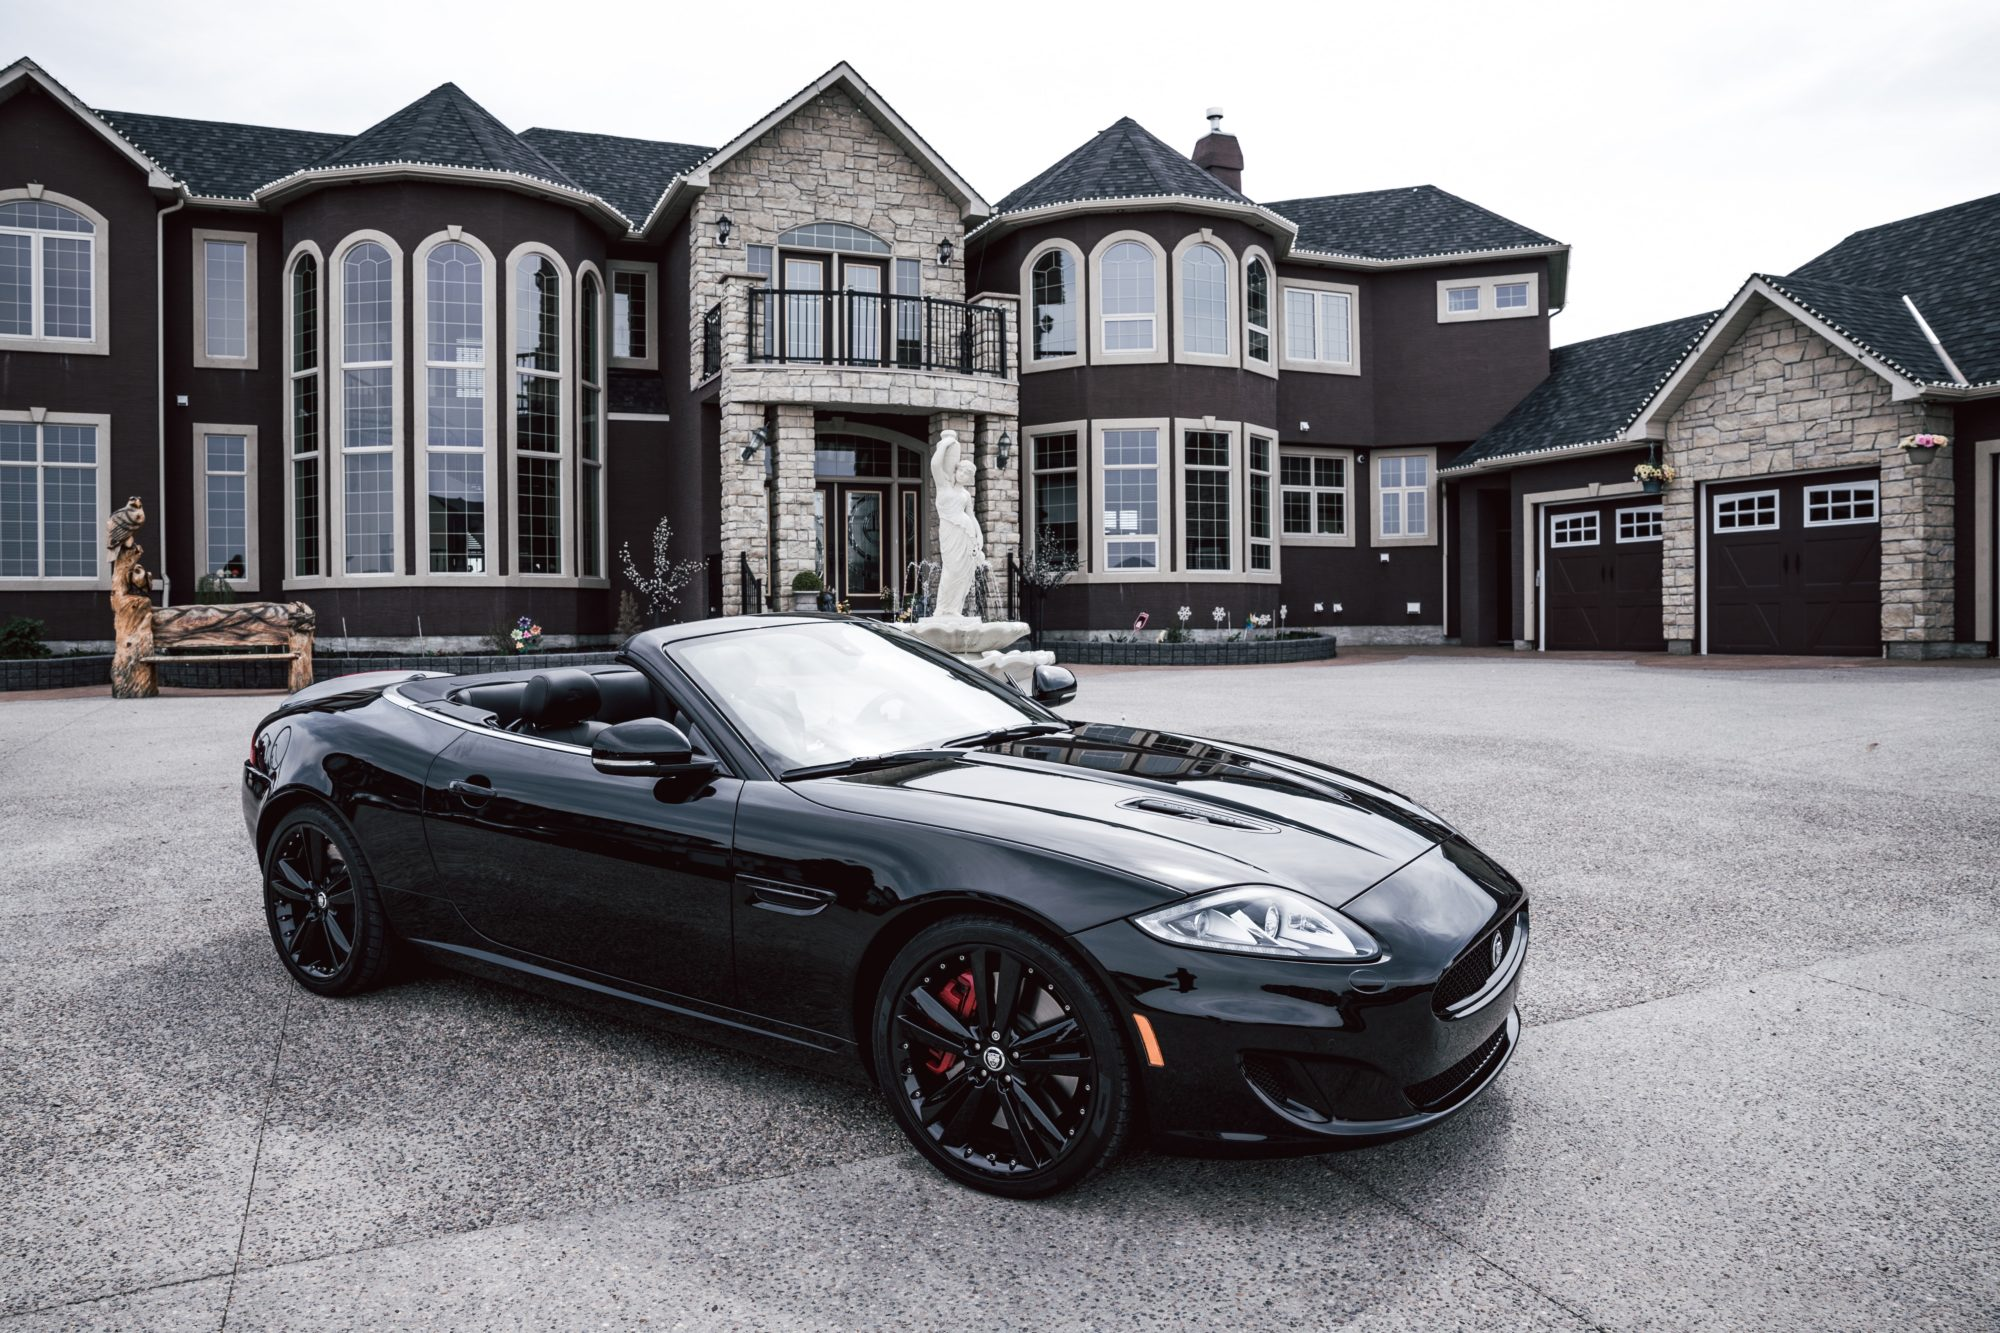 black sports car in front of mansion